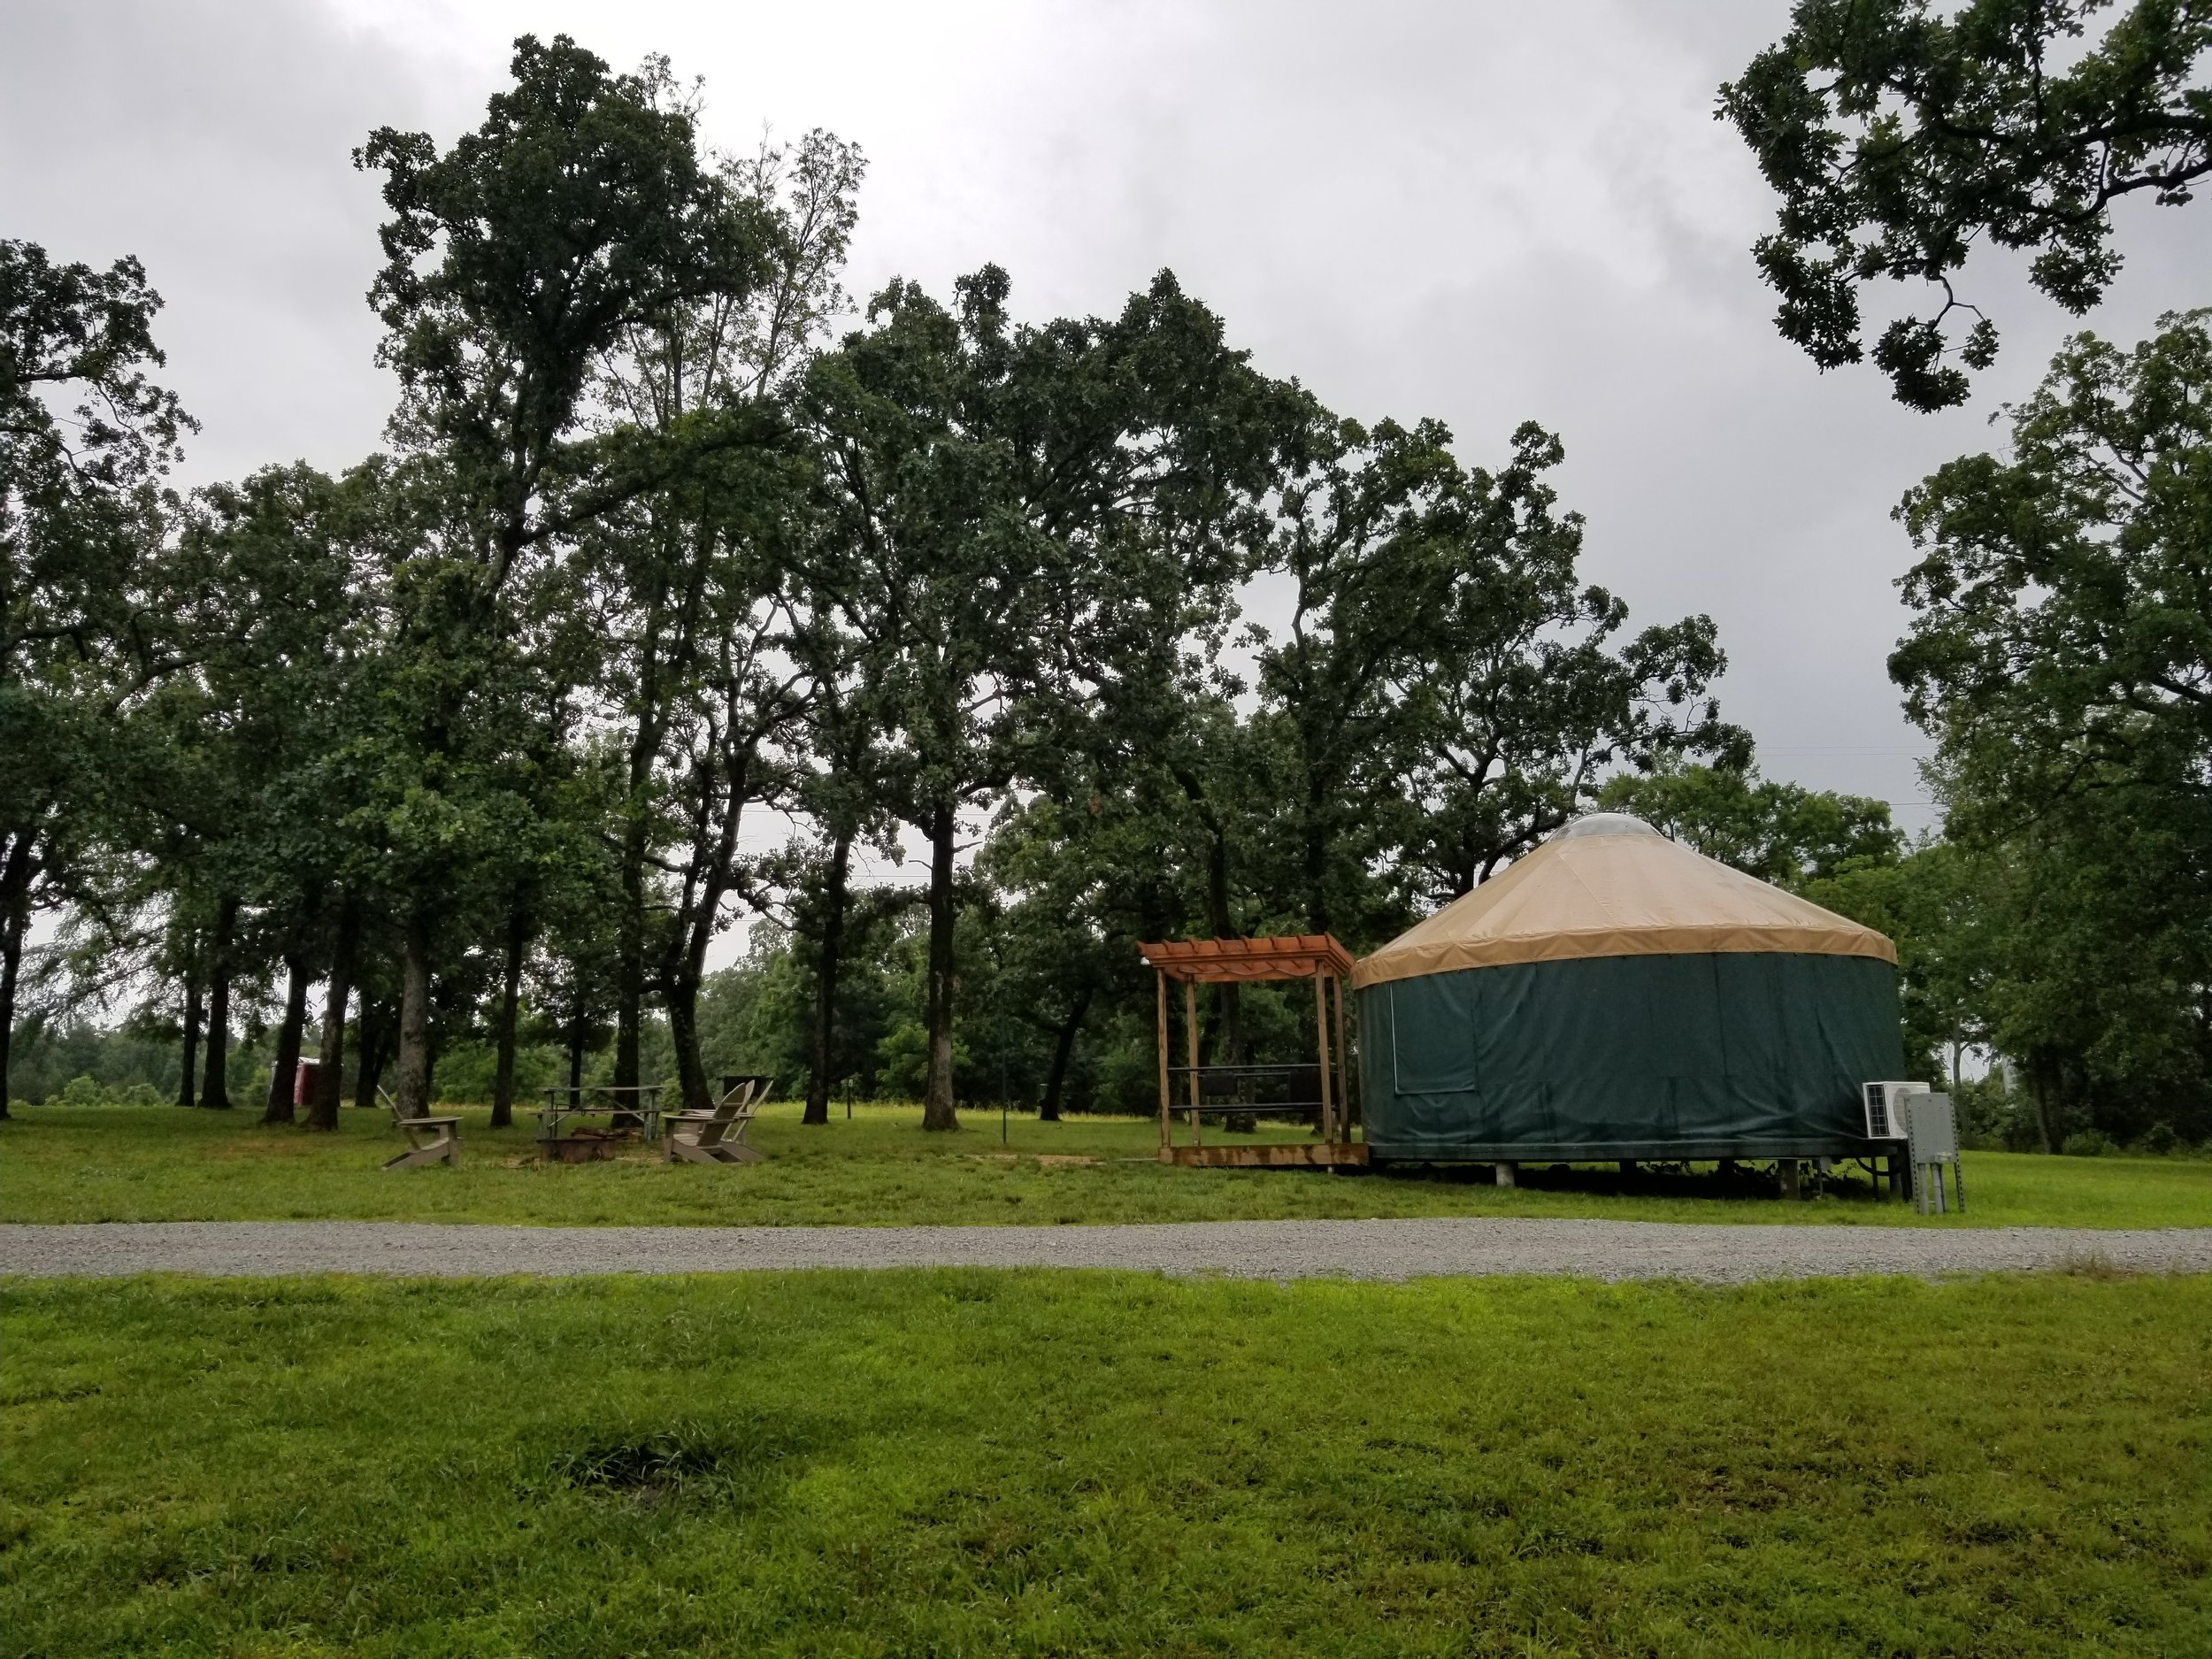 This state park also has Yurts you can rent